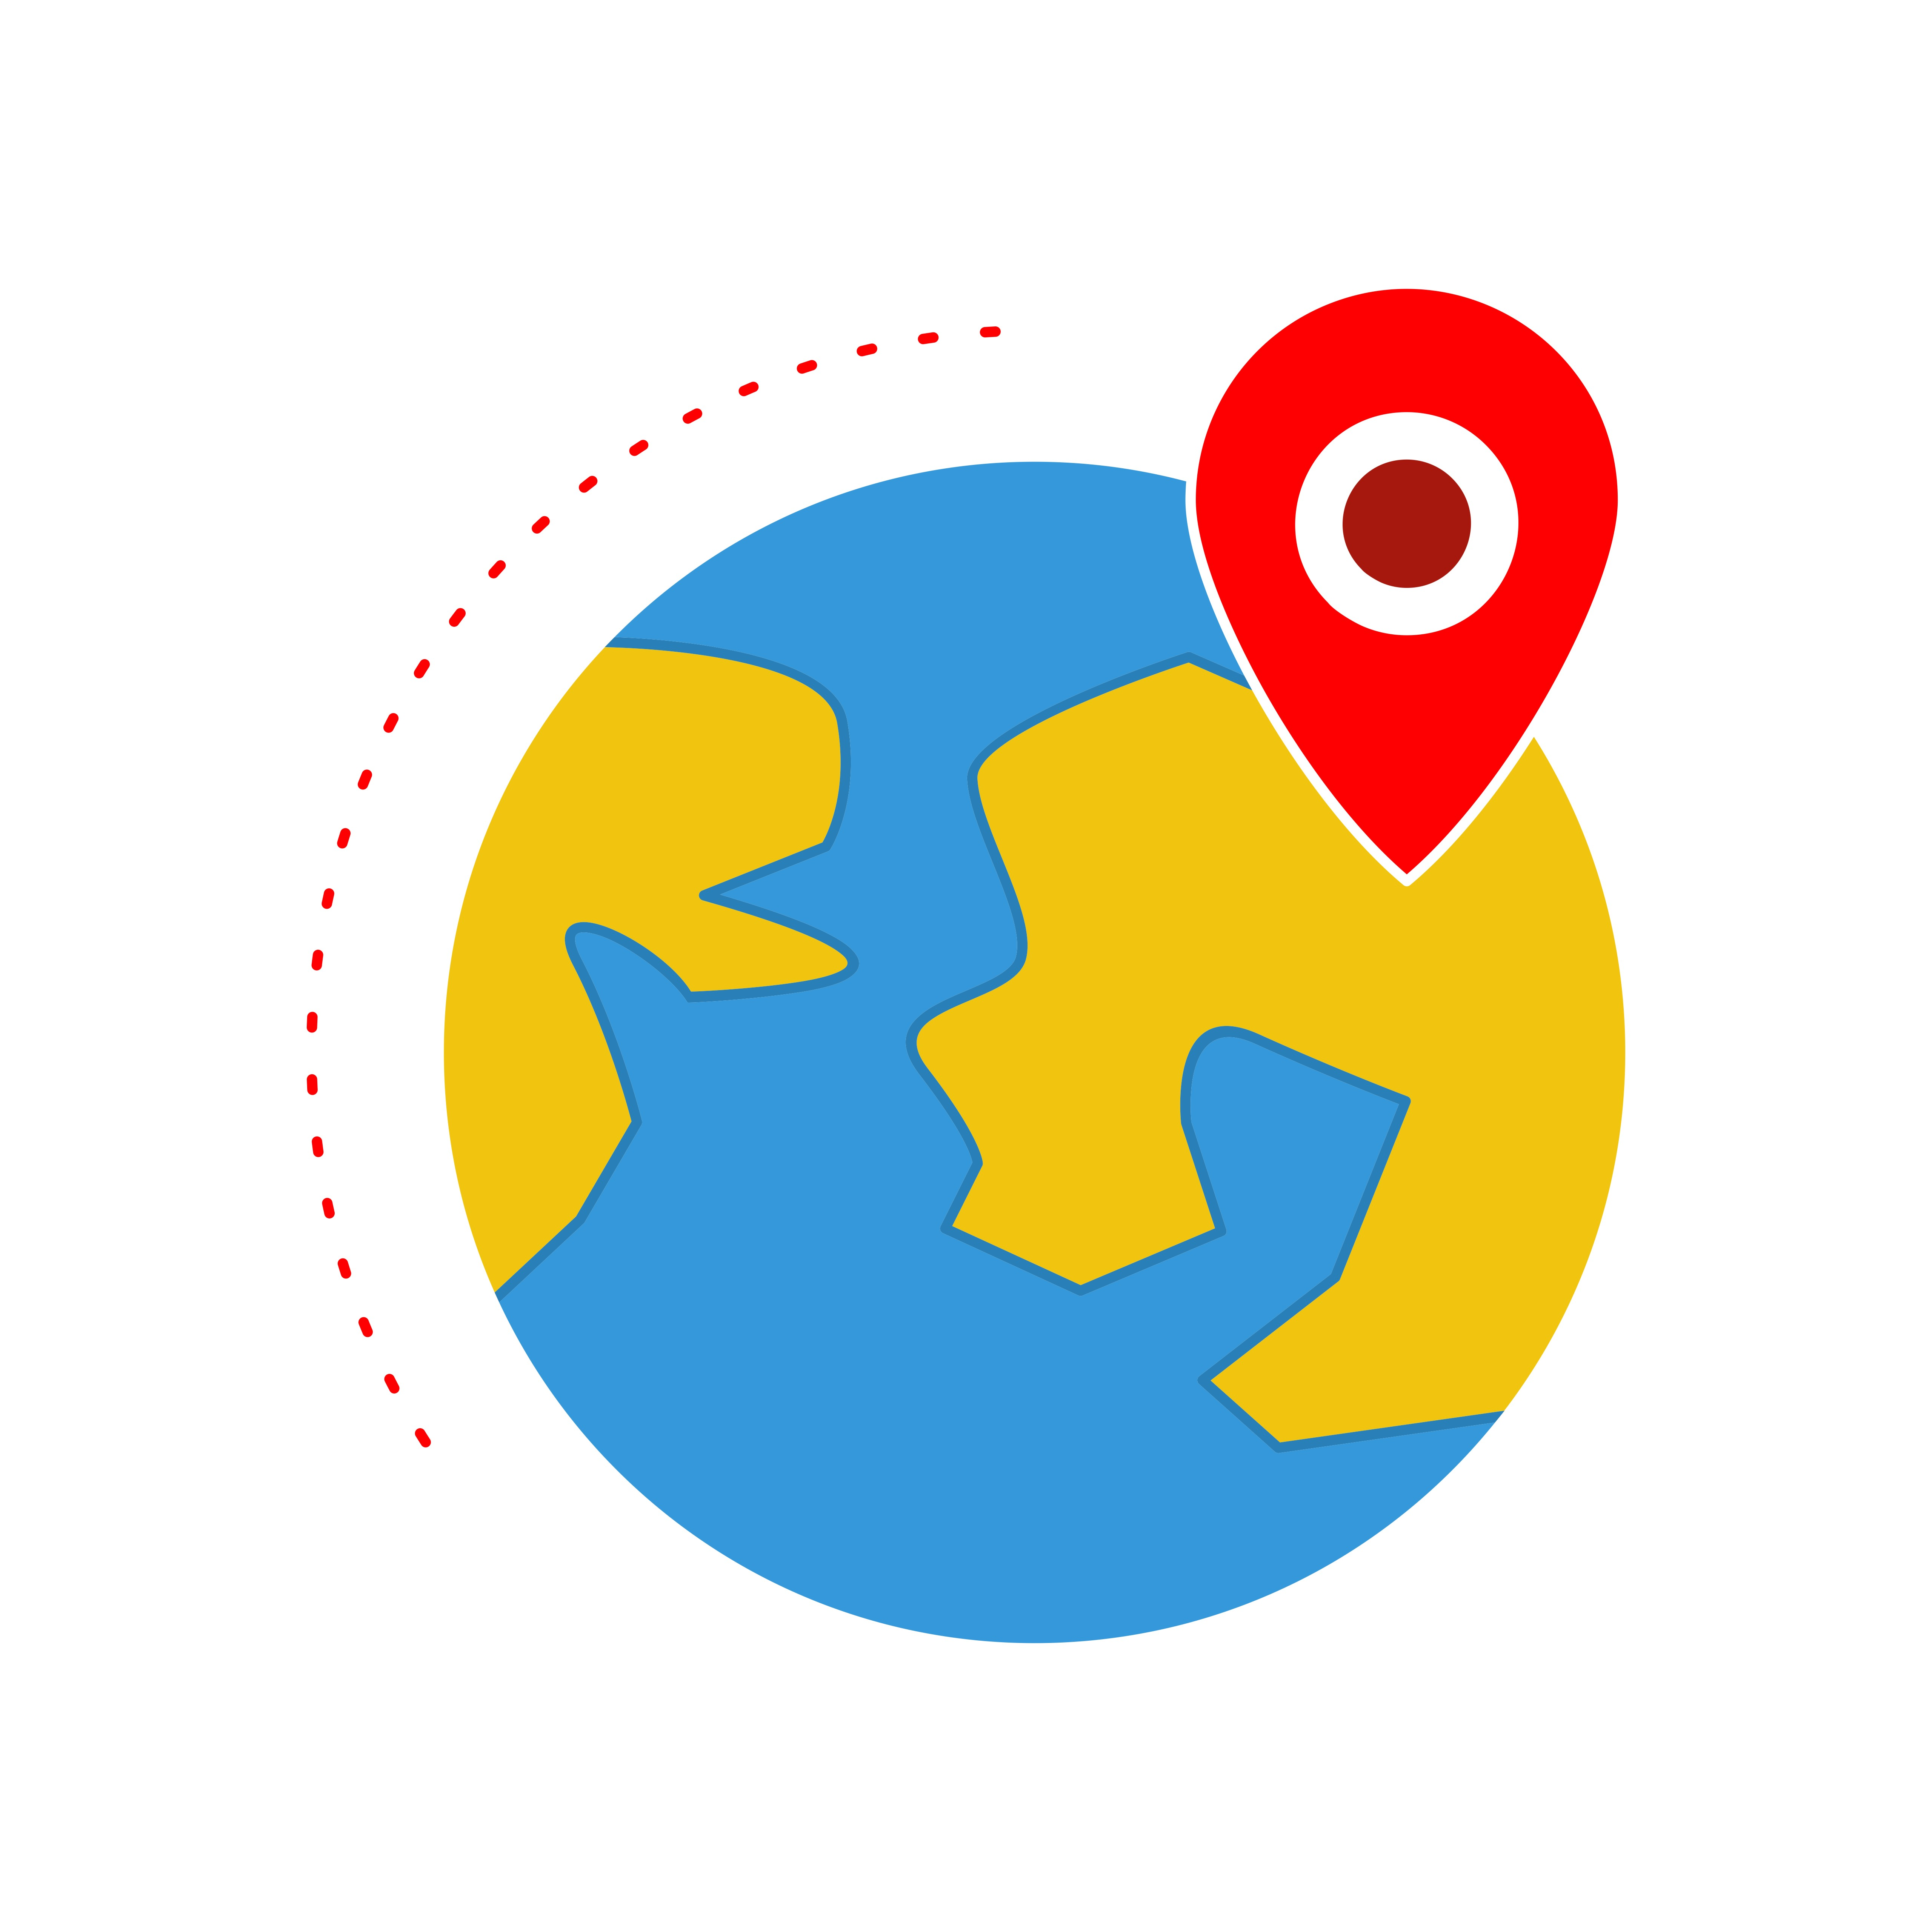 Location on Earth Flat Multi color icon - Download Free ...